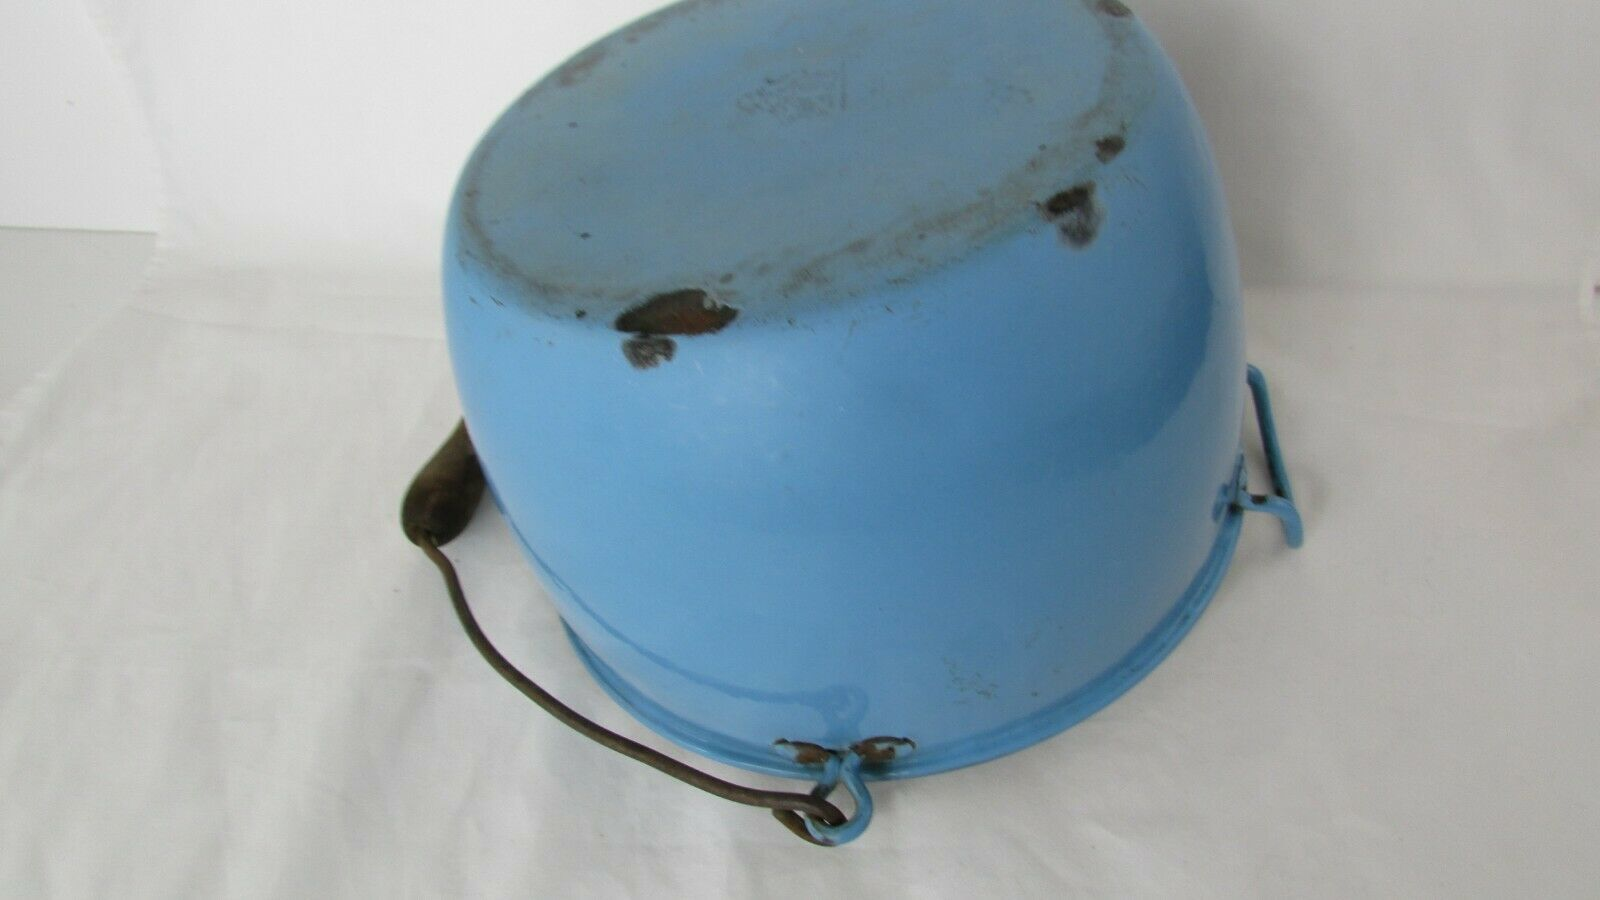 Vintage Enamel  Pail Bucket Blue and White Enamelware With Wooden Handle image 11